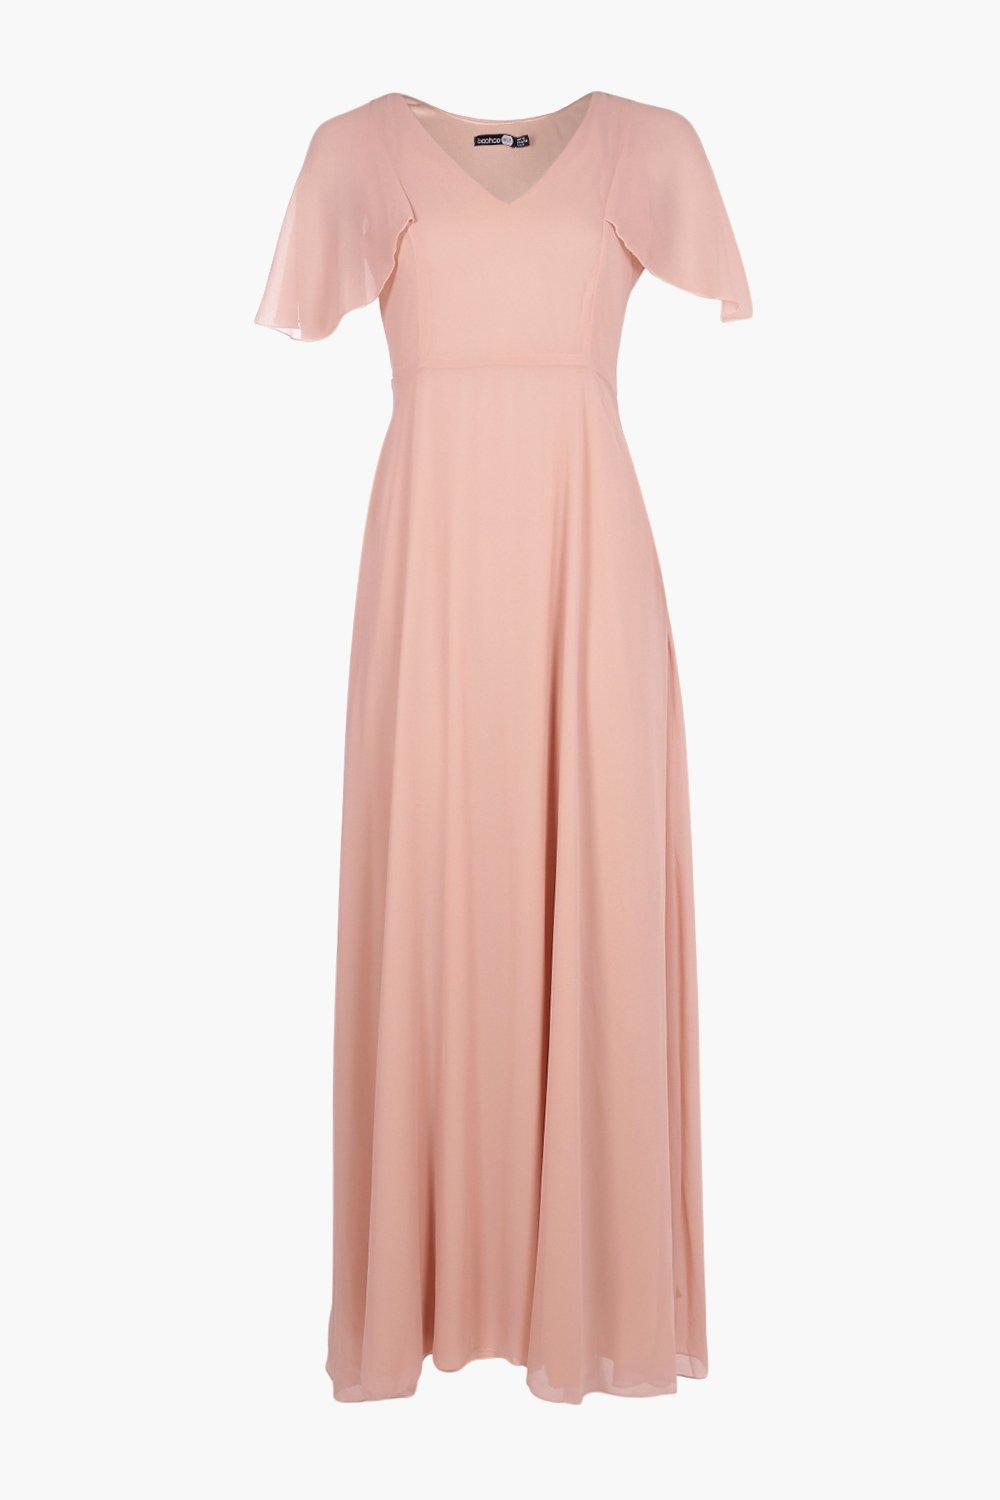 5a3740120d64 ... Chiffon Cape Detail Maxi Dress - Lyst. Visit Boohoo. Tap to visit site